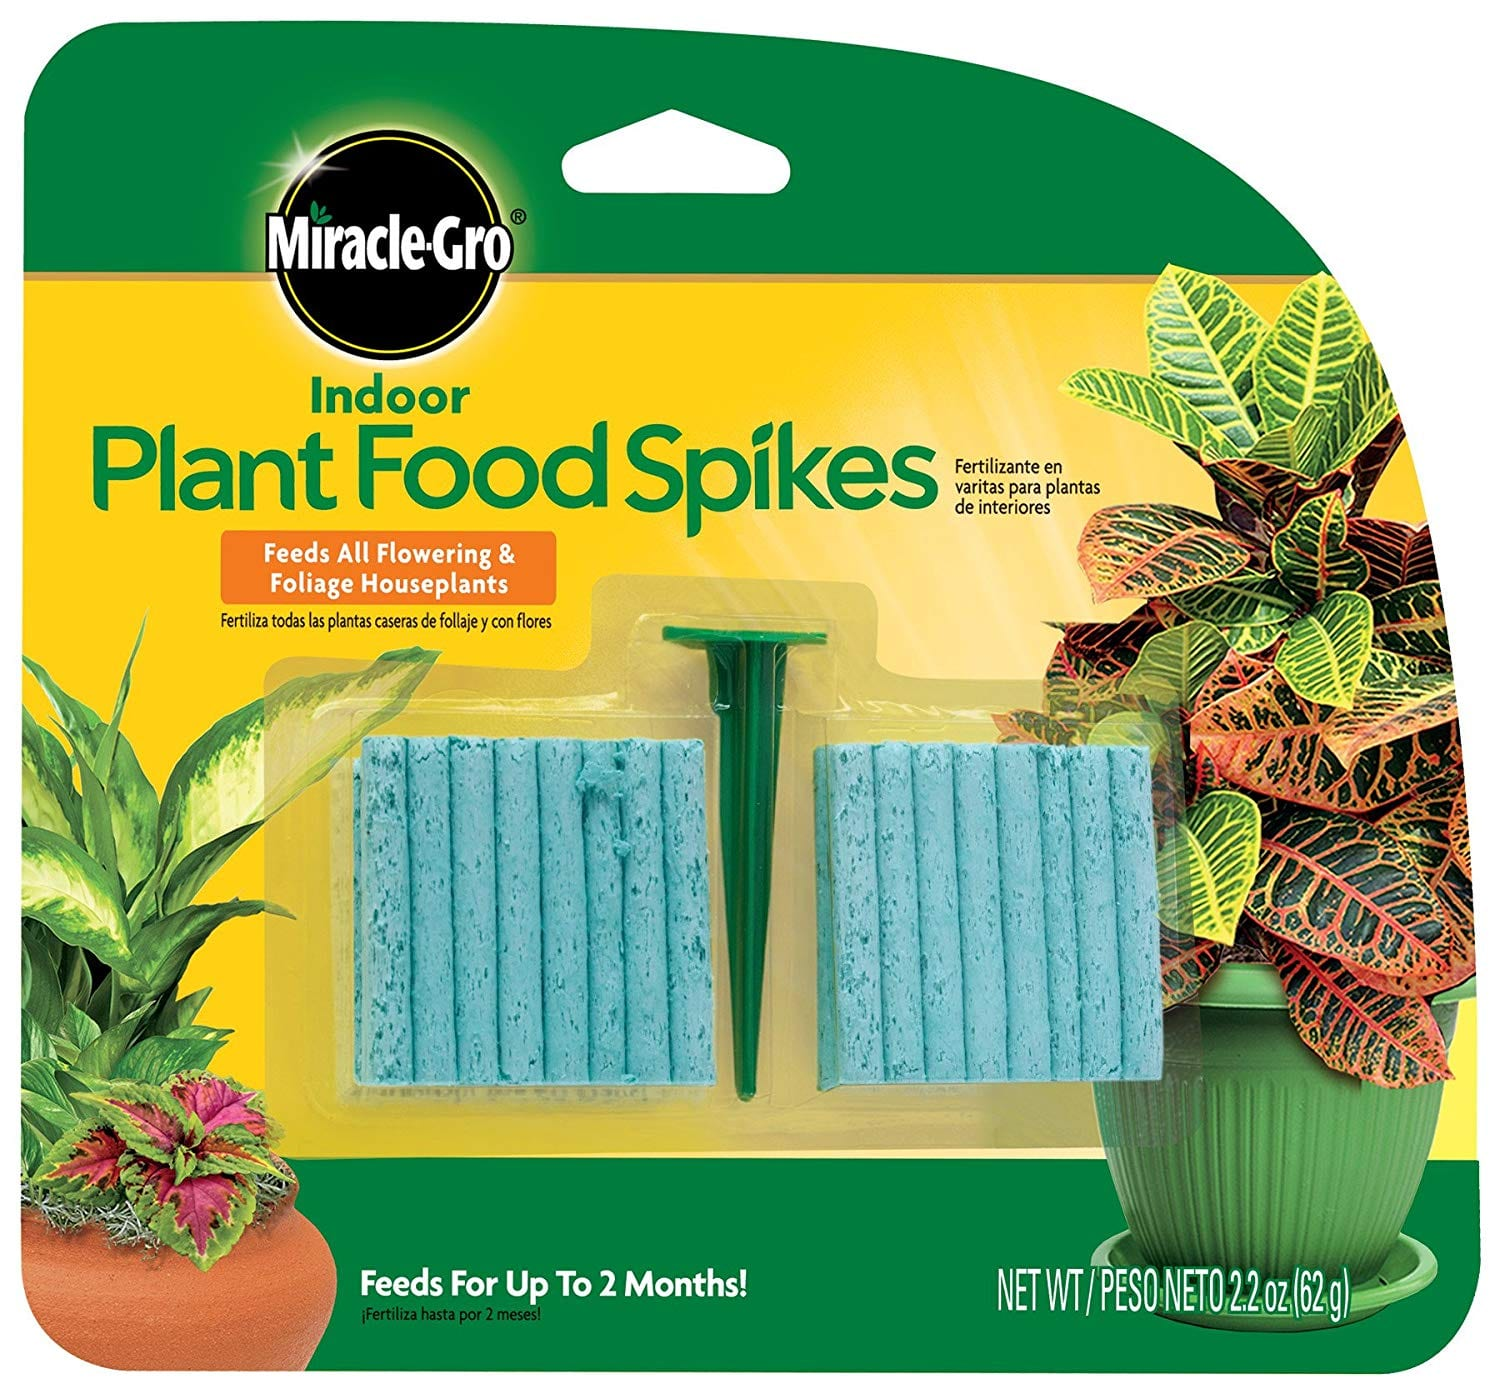 2 24 Miracle Gro Indoor Plant Food 48 Spikes Slickdeals